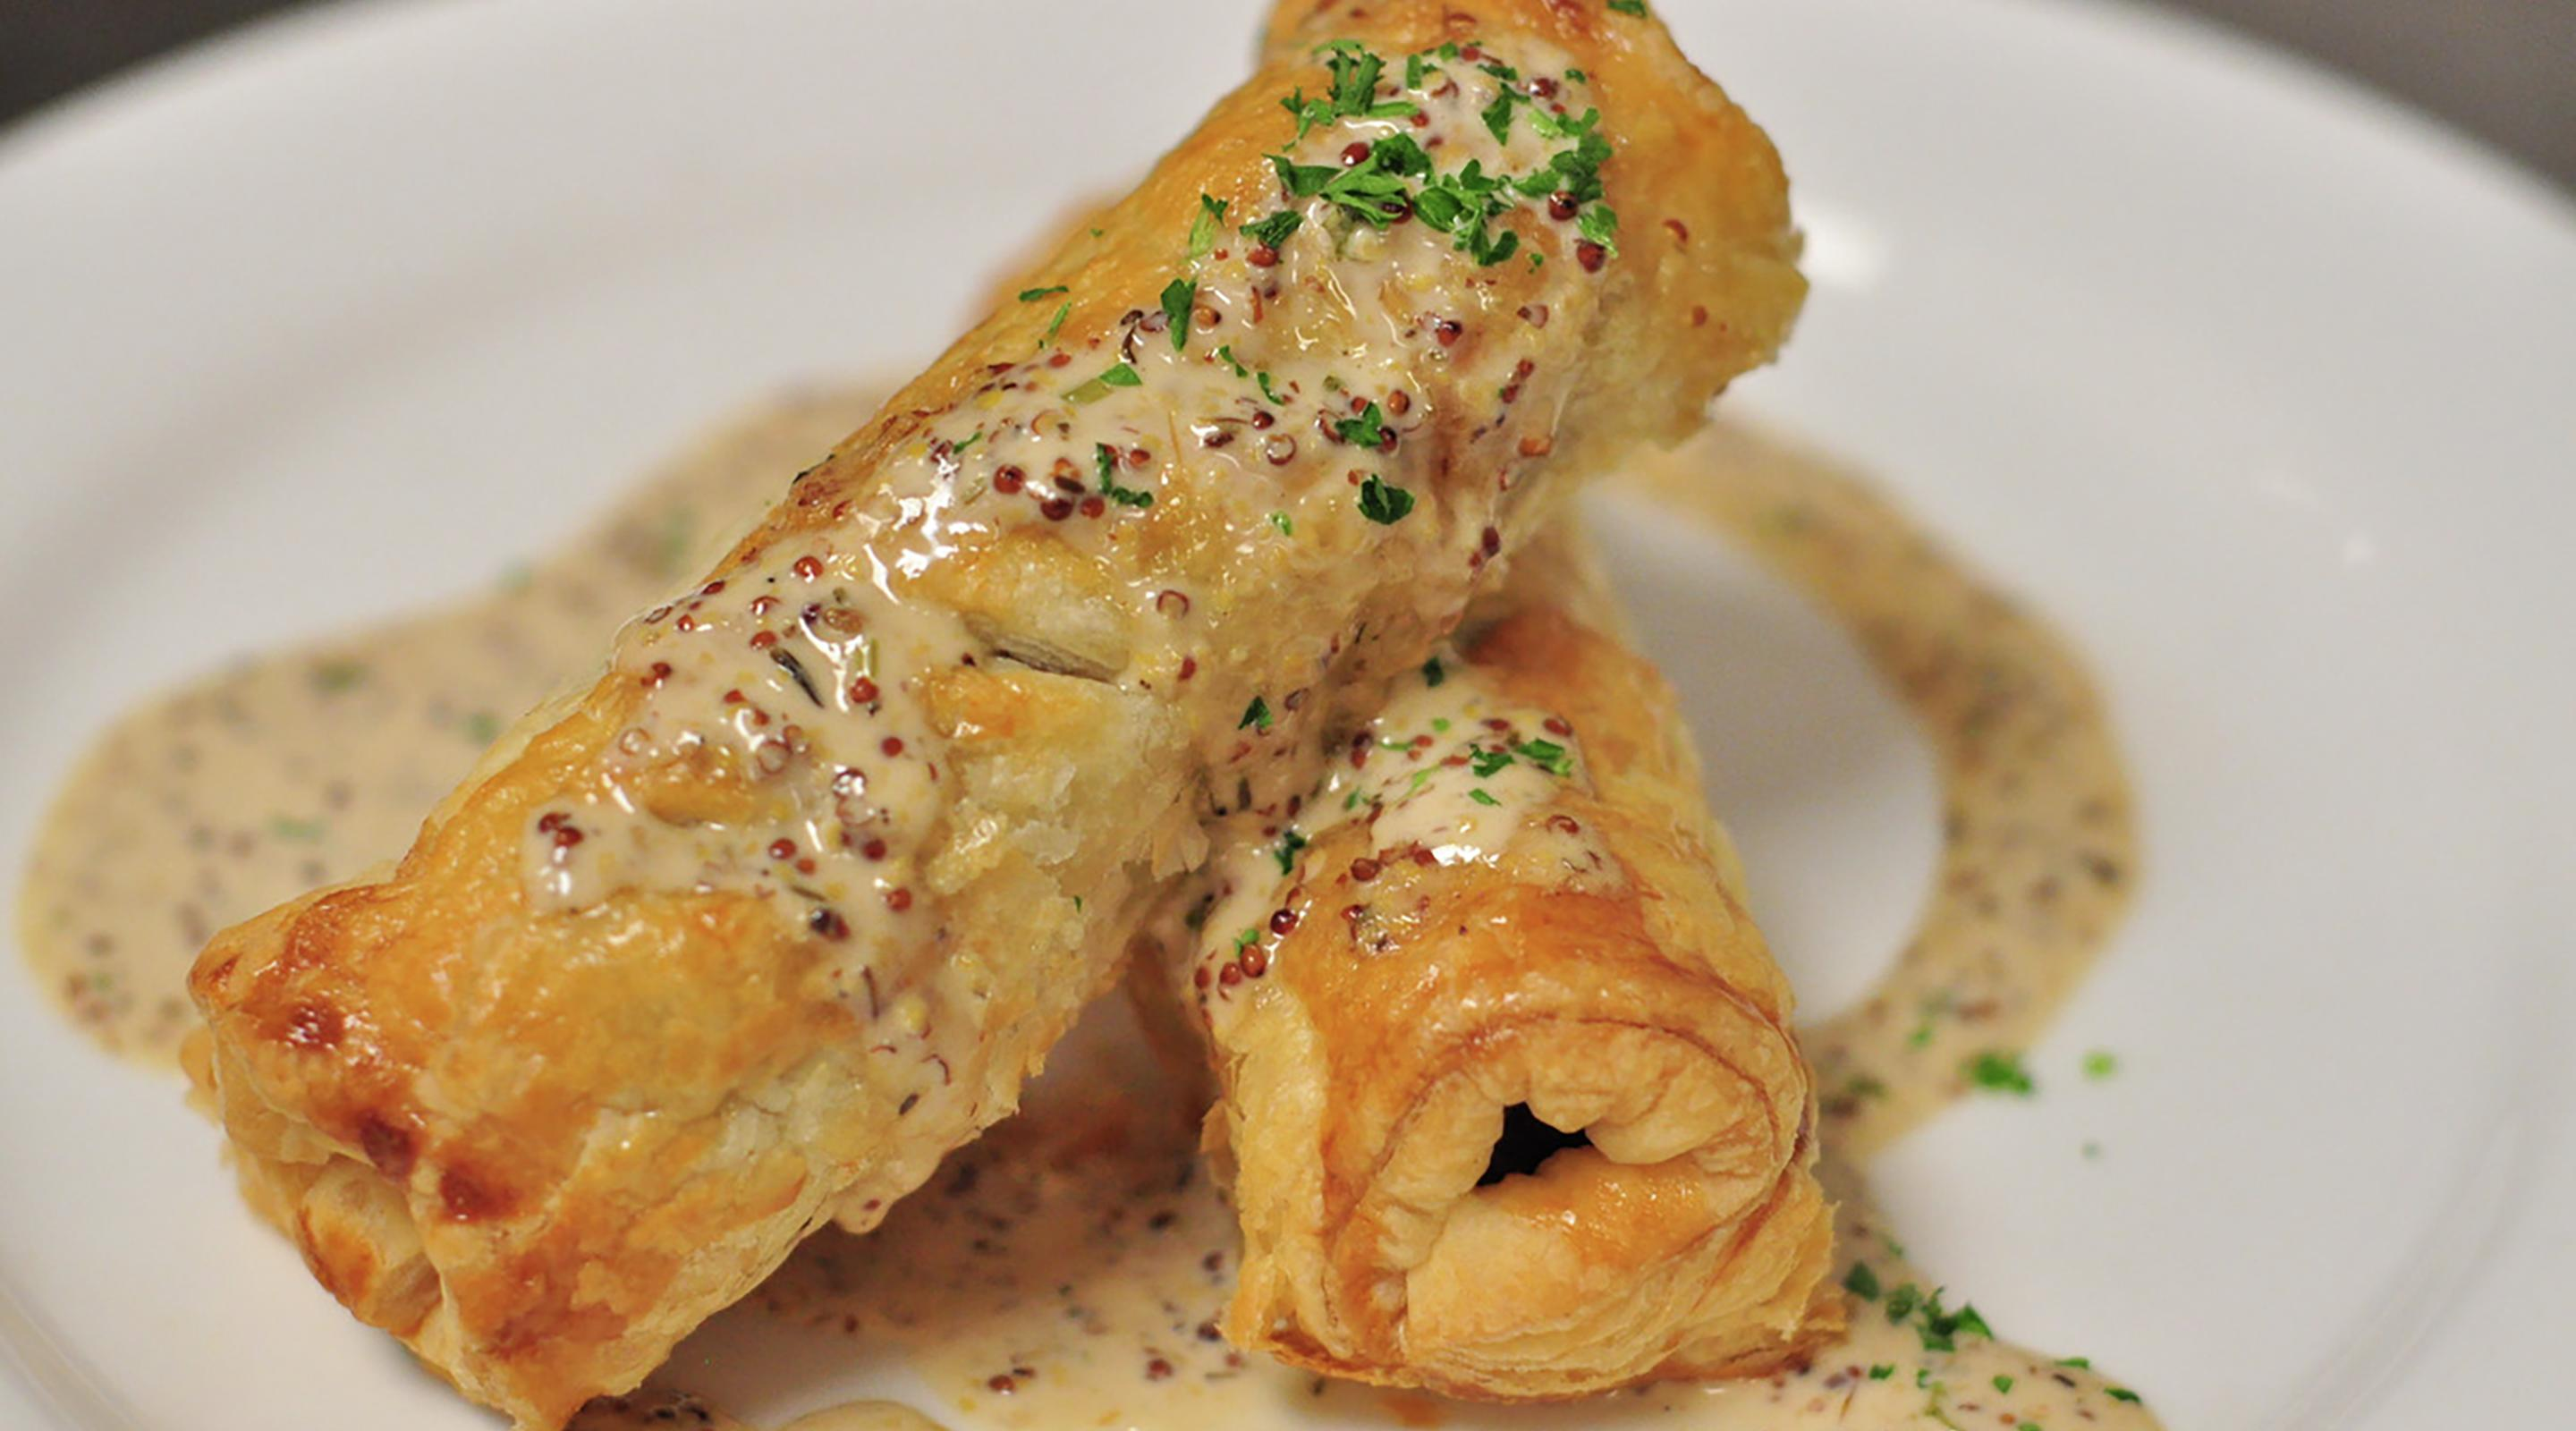 Pastry wrapped bangers, guinness mustard sauce, fresh herbs